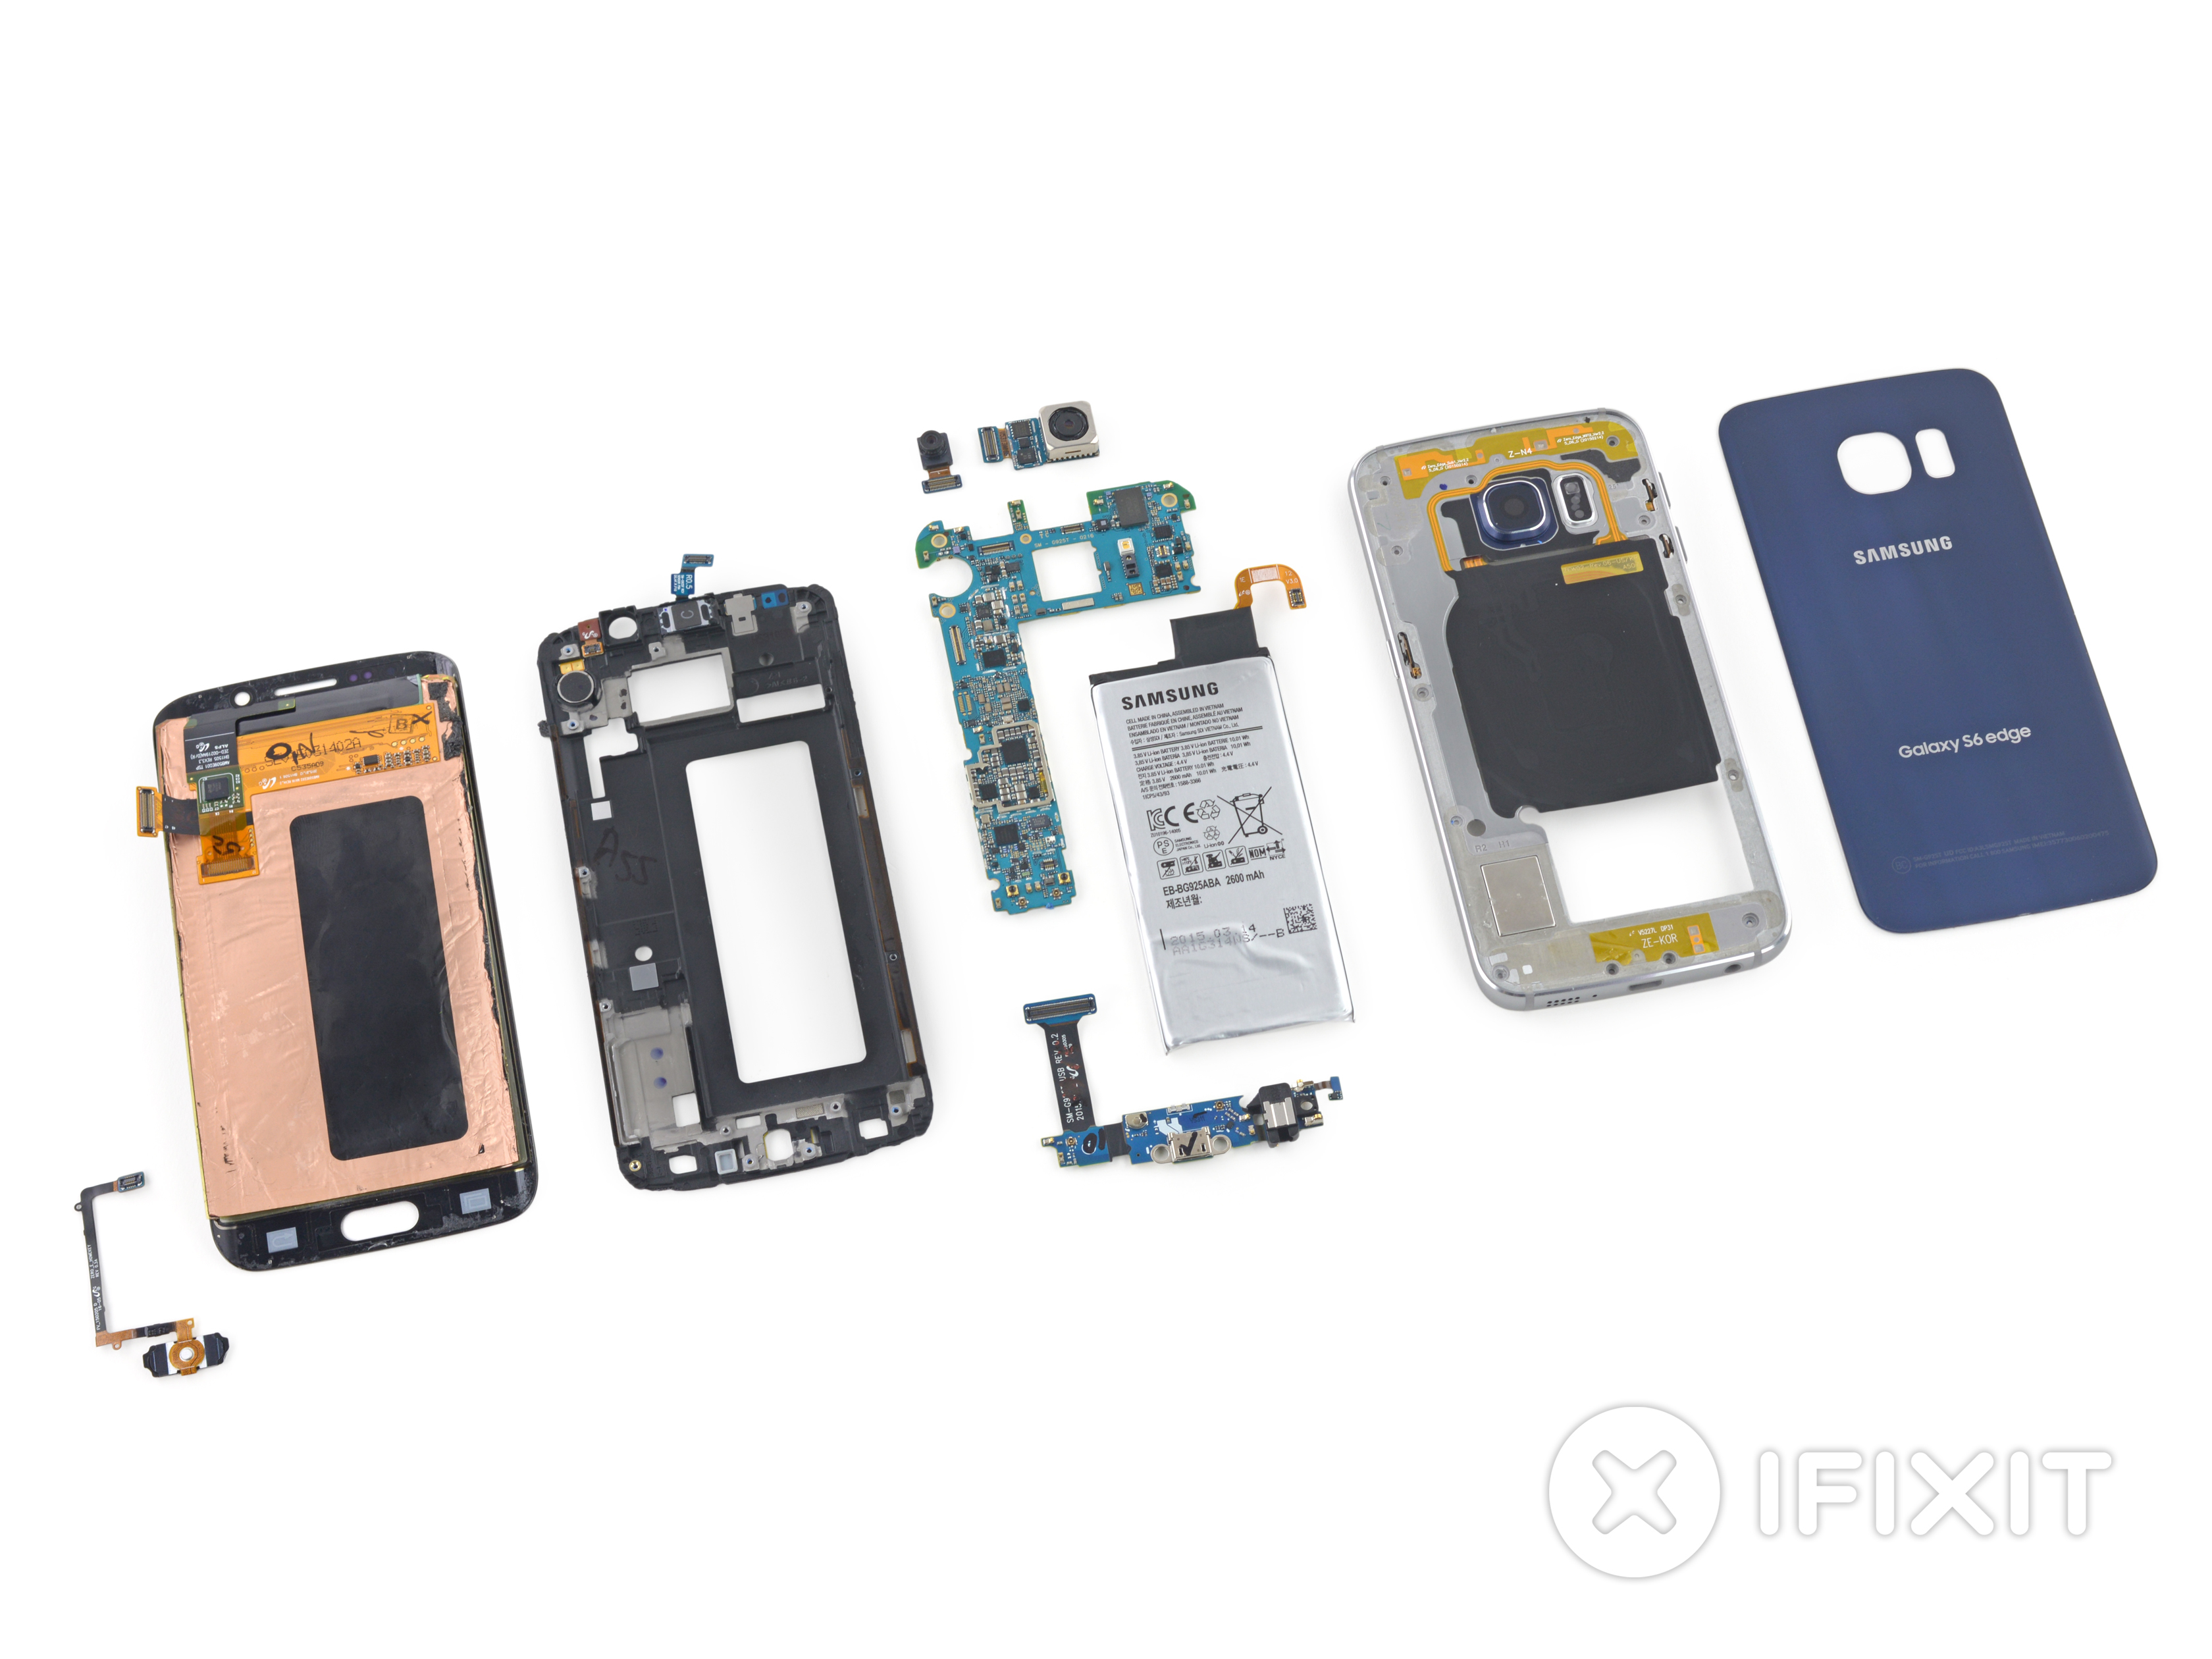 Ifixit d montage en r gle du samsung galaxy s6 edge for Despiece smart